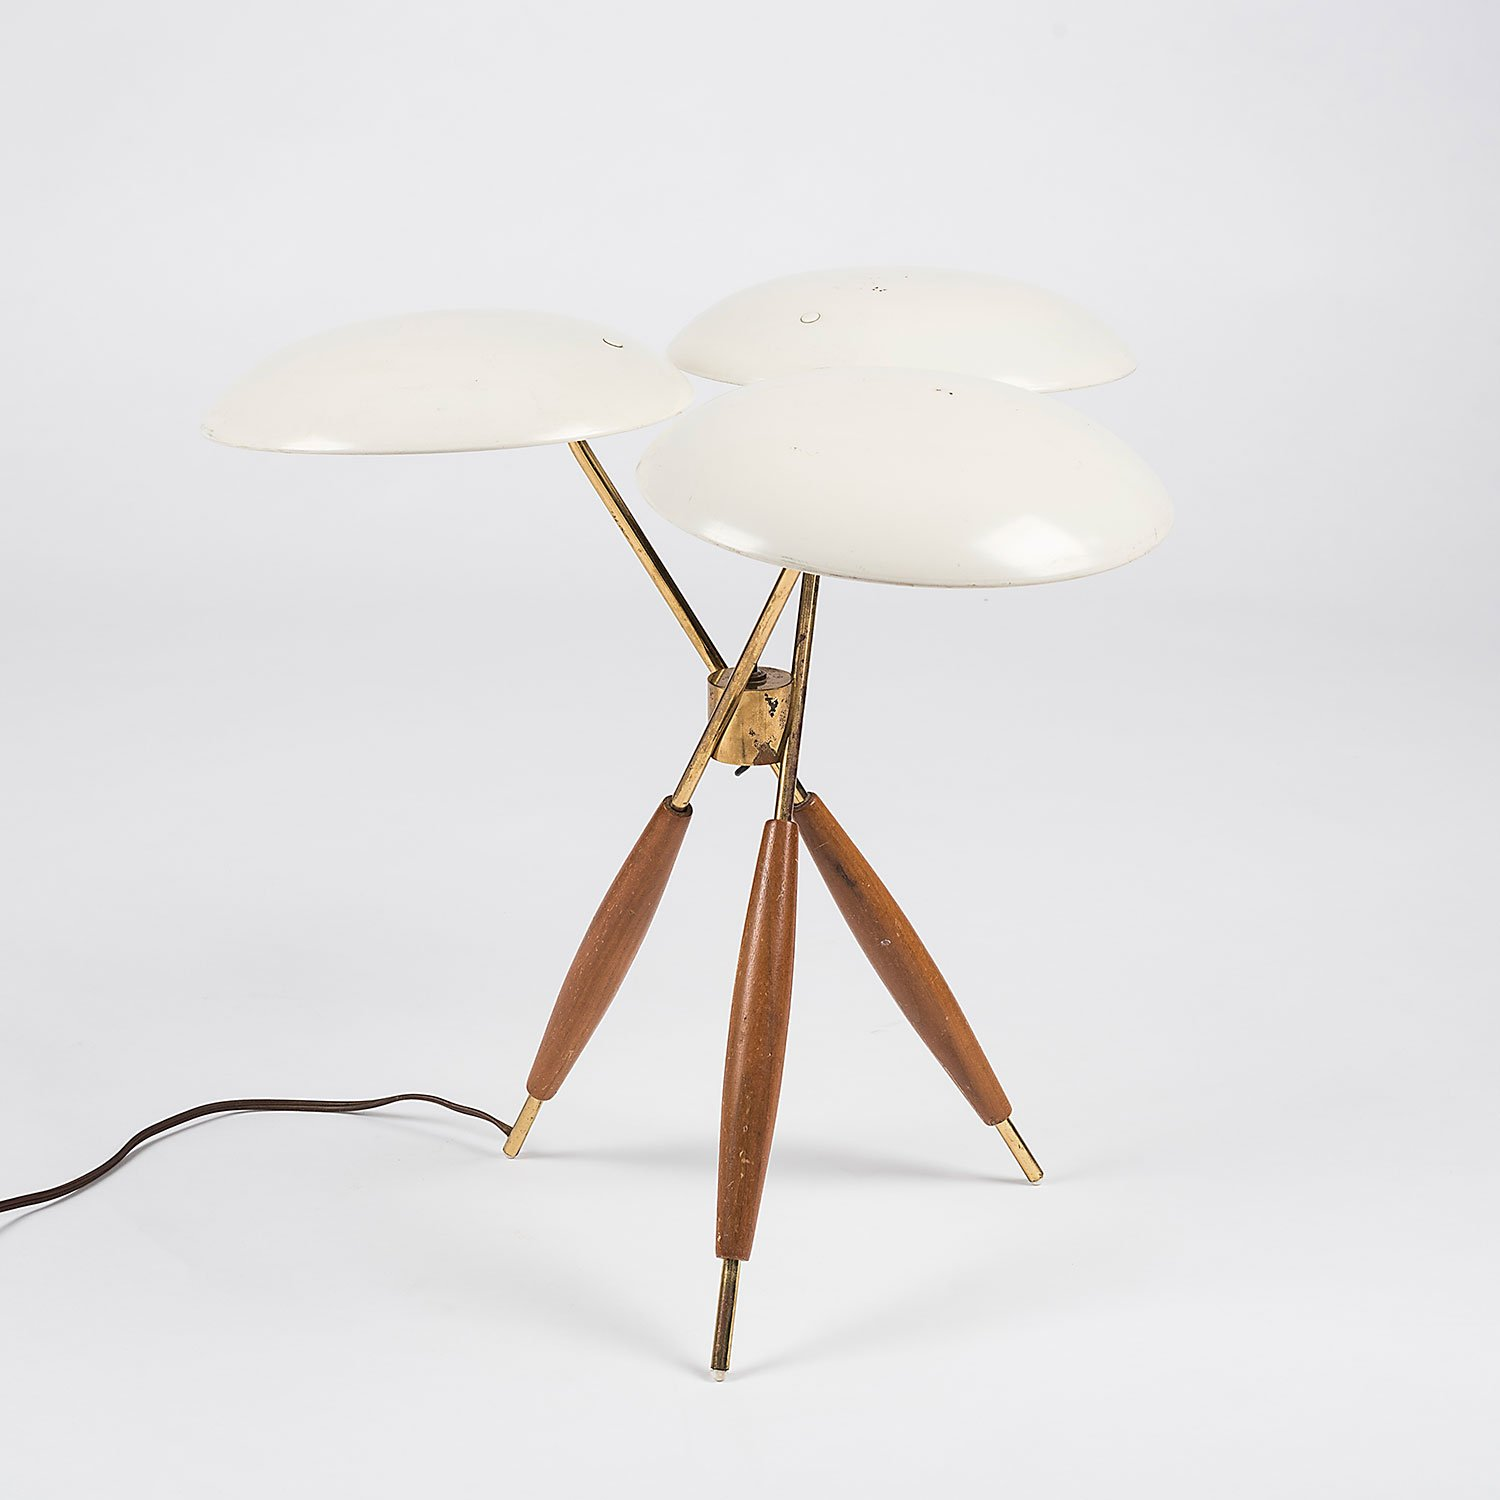 Gerald Thurston  |  Table lamp